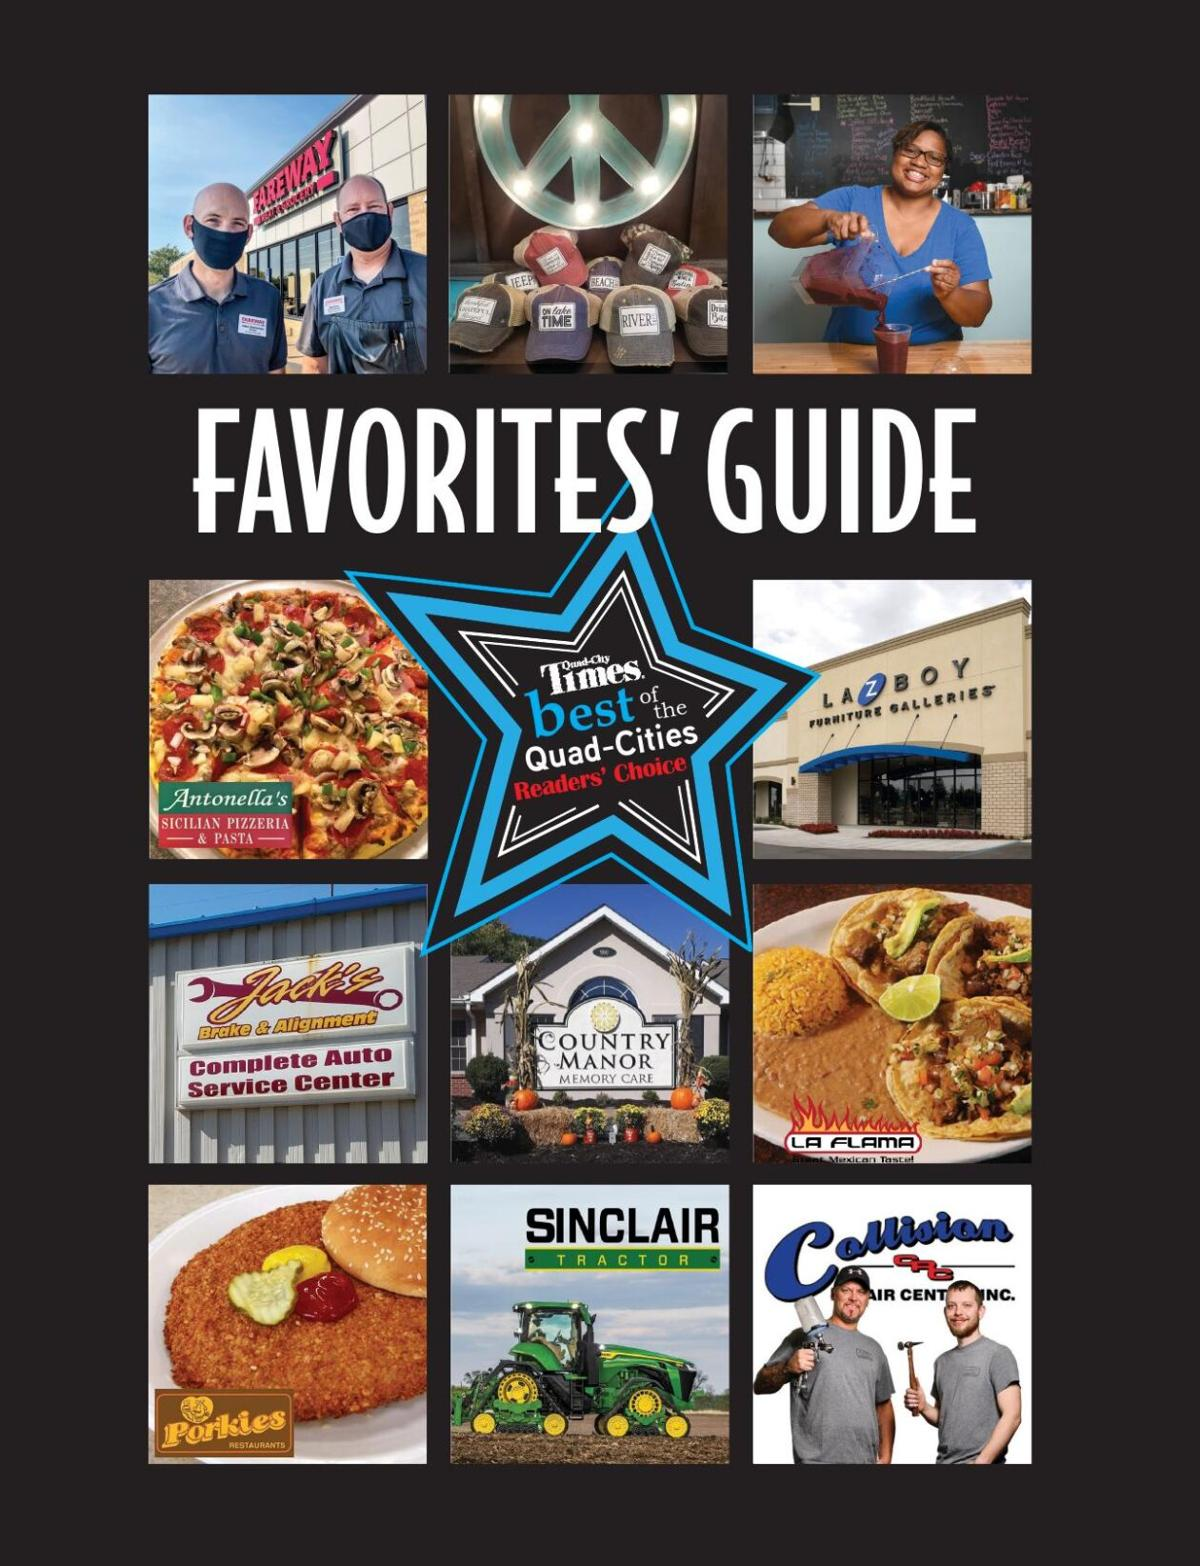 2020 Quad-City Readers' Choice Favorites Guide